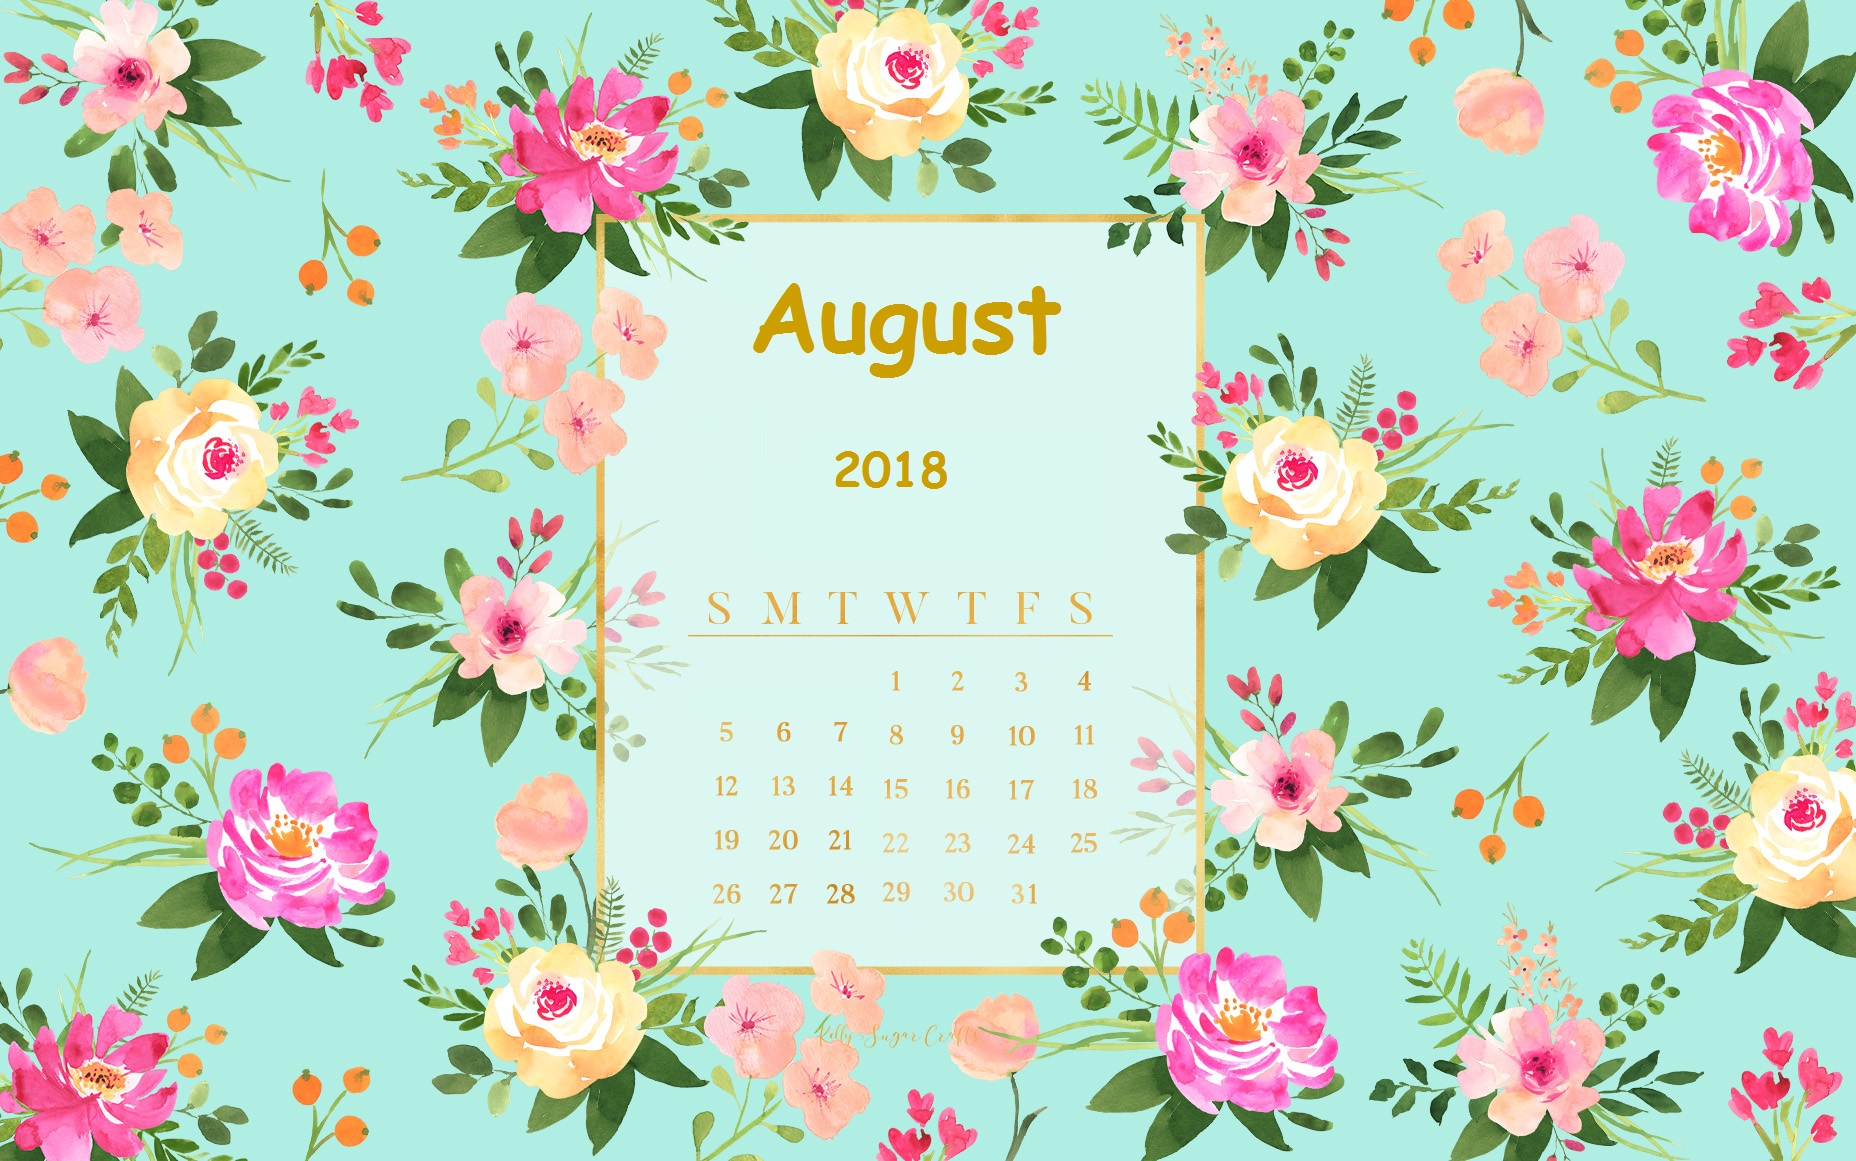 Goodbye July Hello August 2018 Calendar